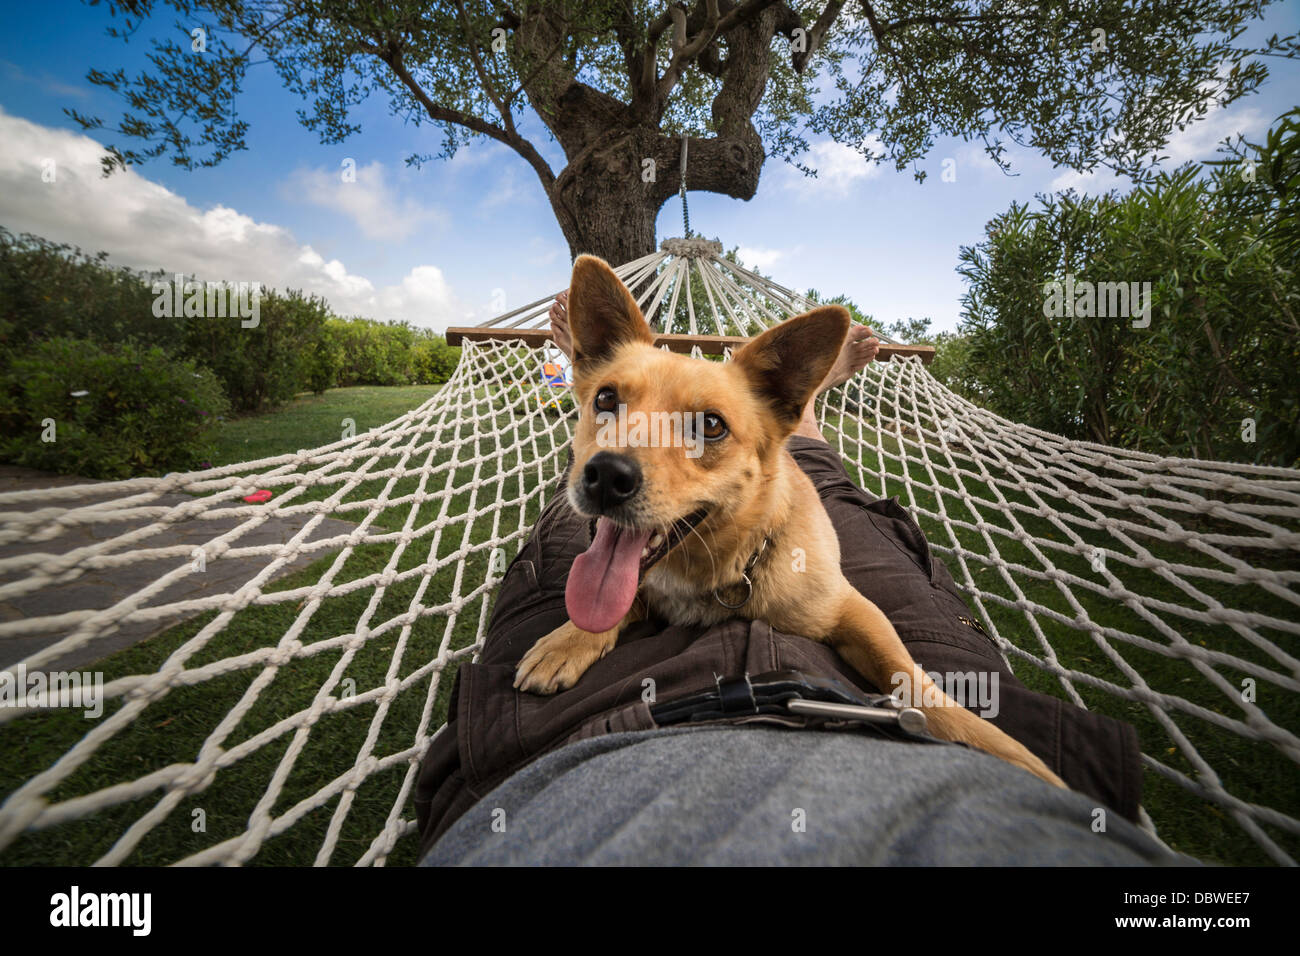 Man and dog relaxing on the hammock - Stock Image